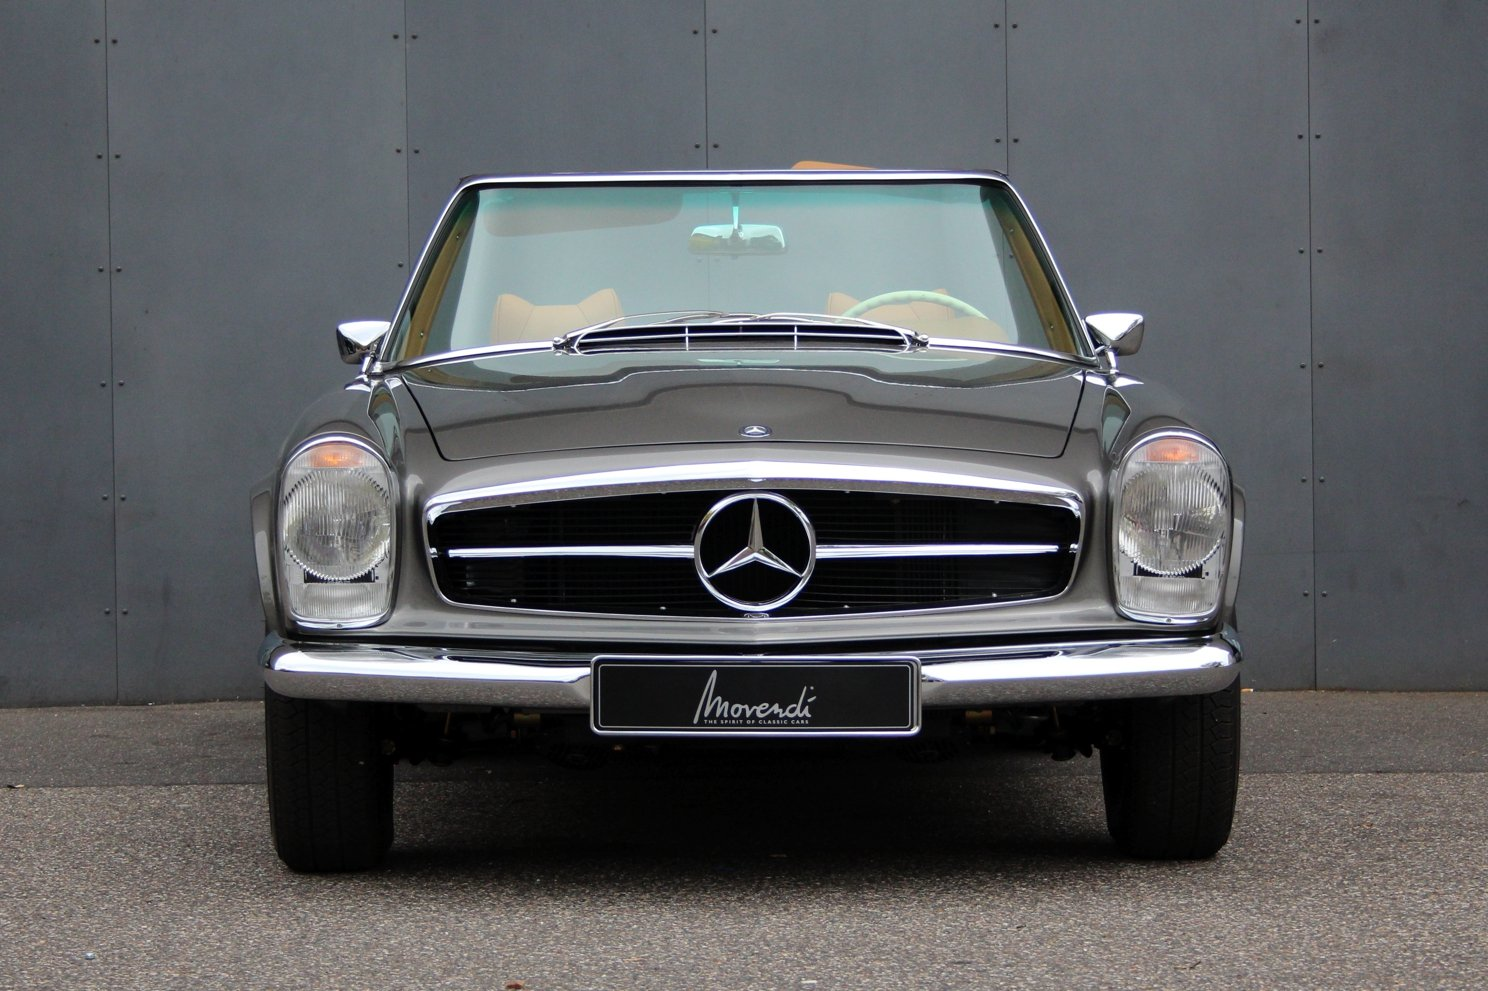 1971 Mercedes-Benz 280 SL Pagoda LHD For Sale (picture 6 of 6)